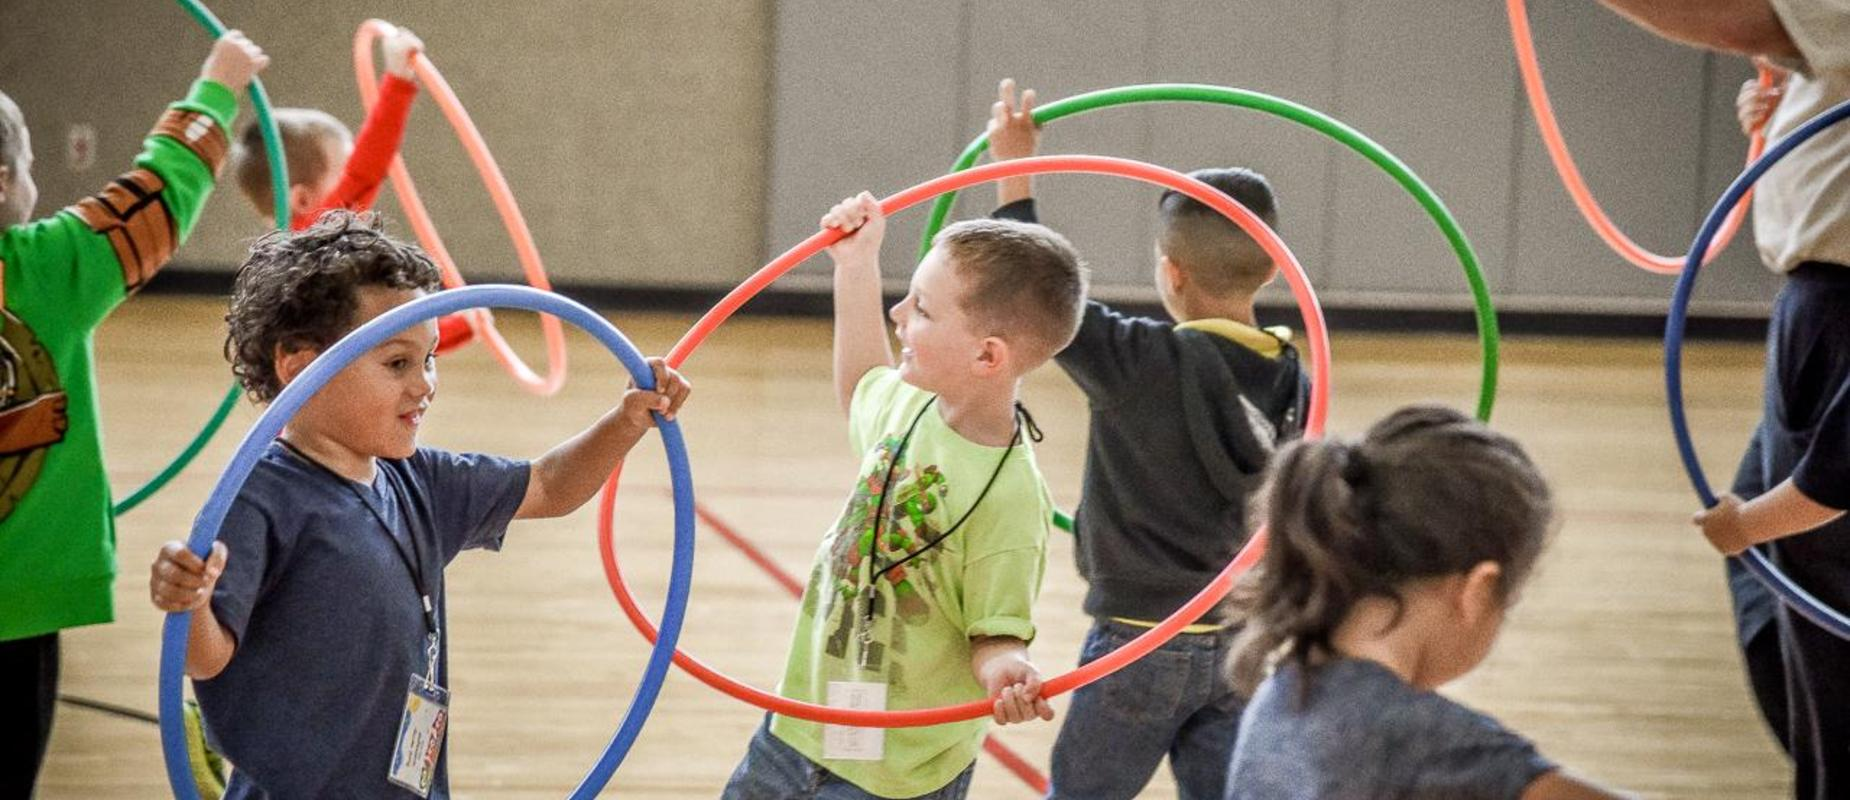 Students playing with Hula-hoops in the gym